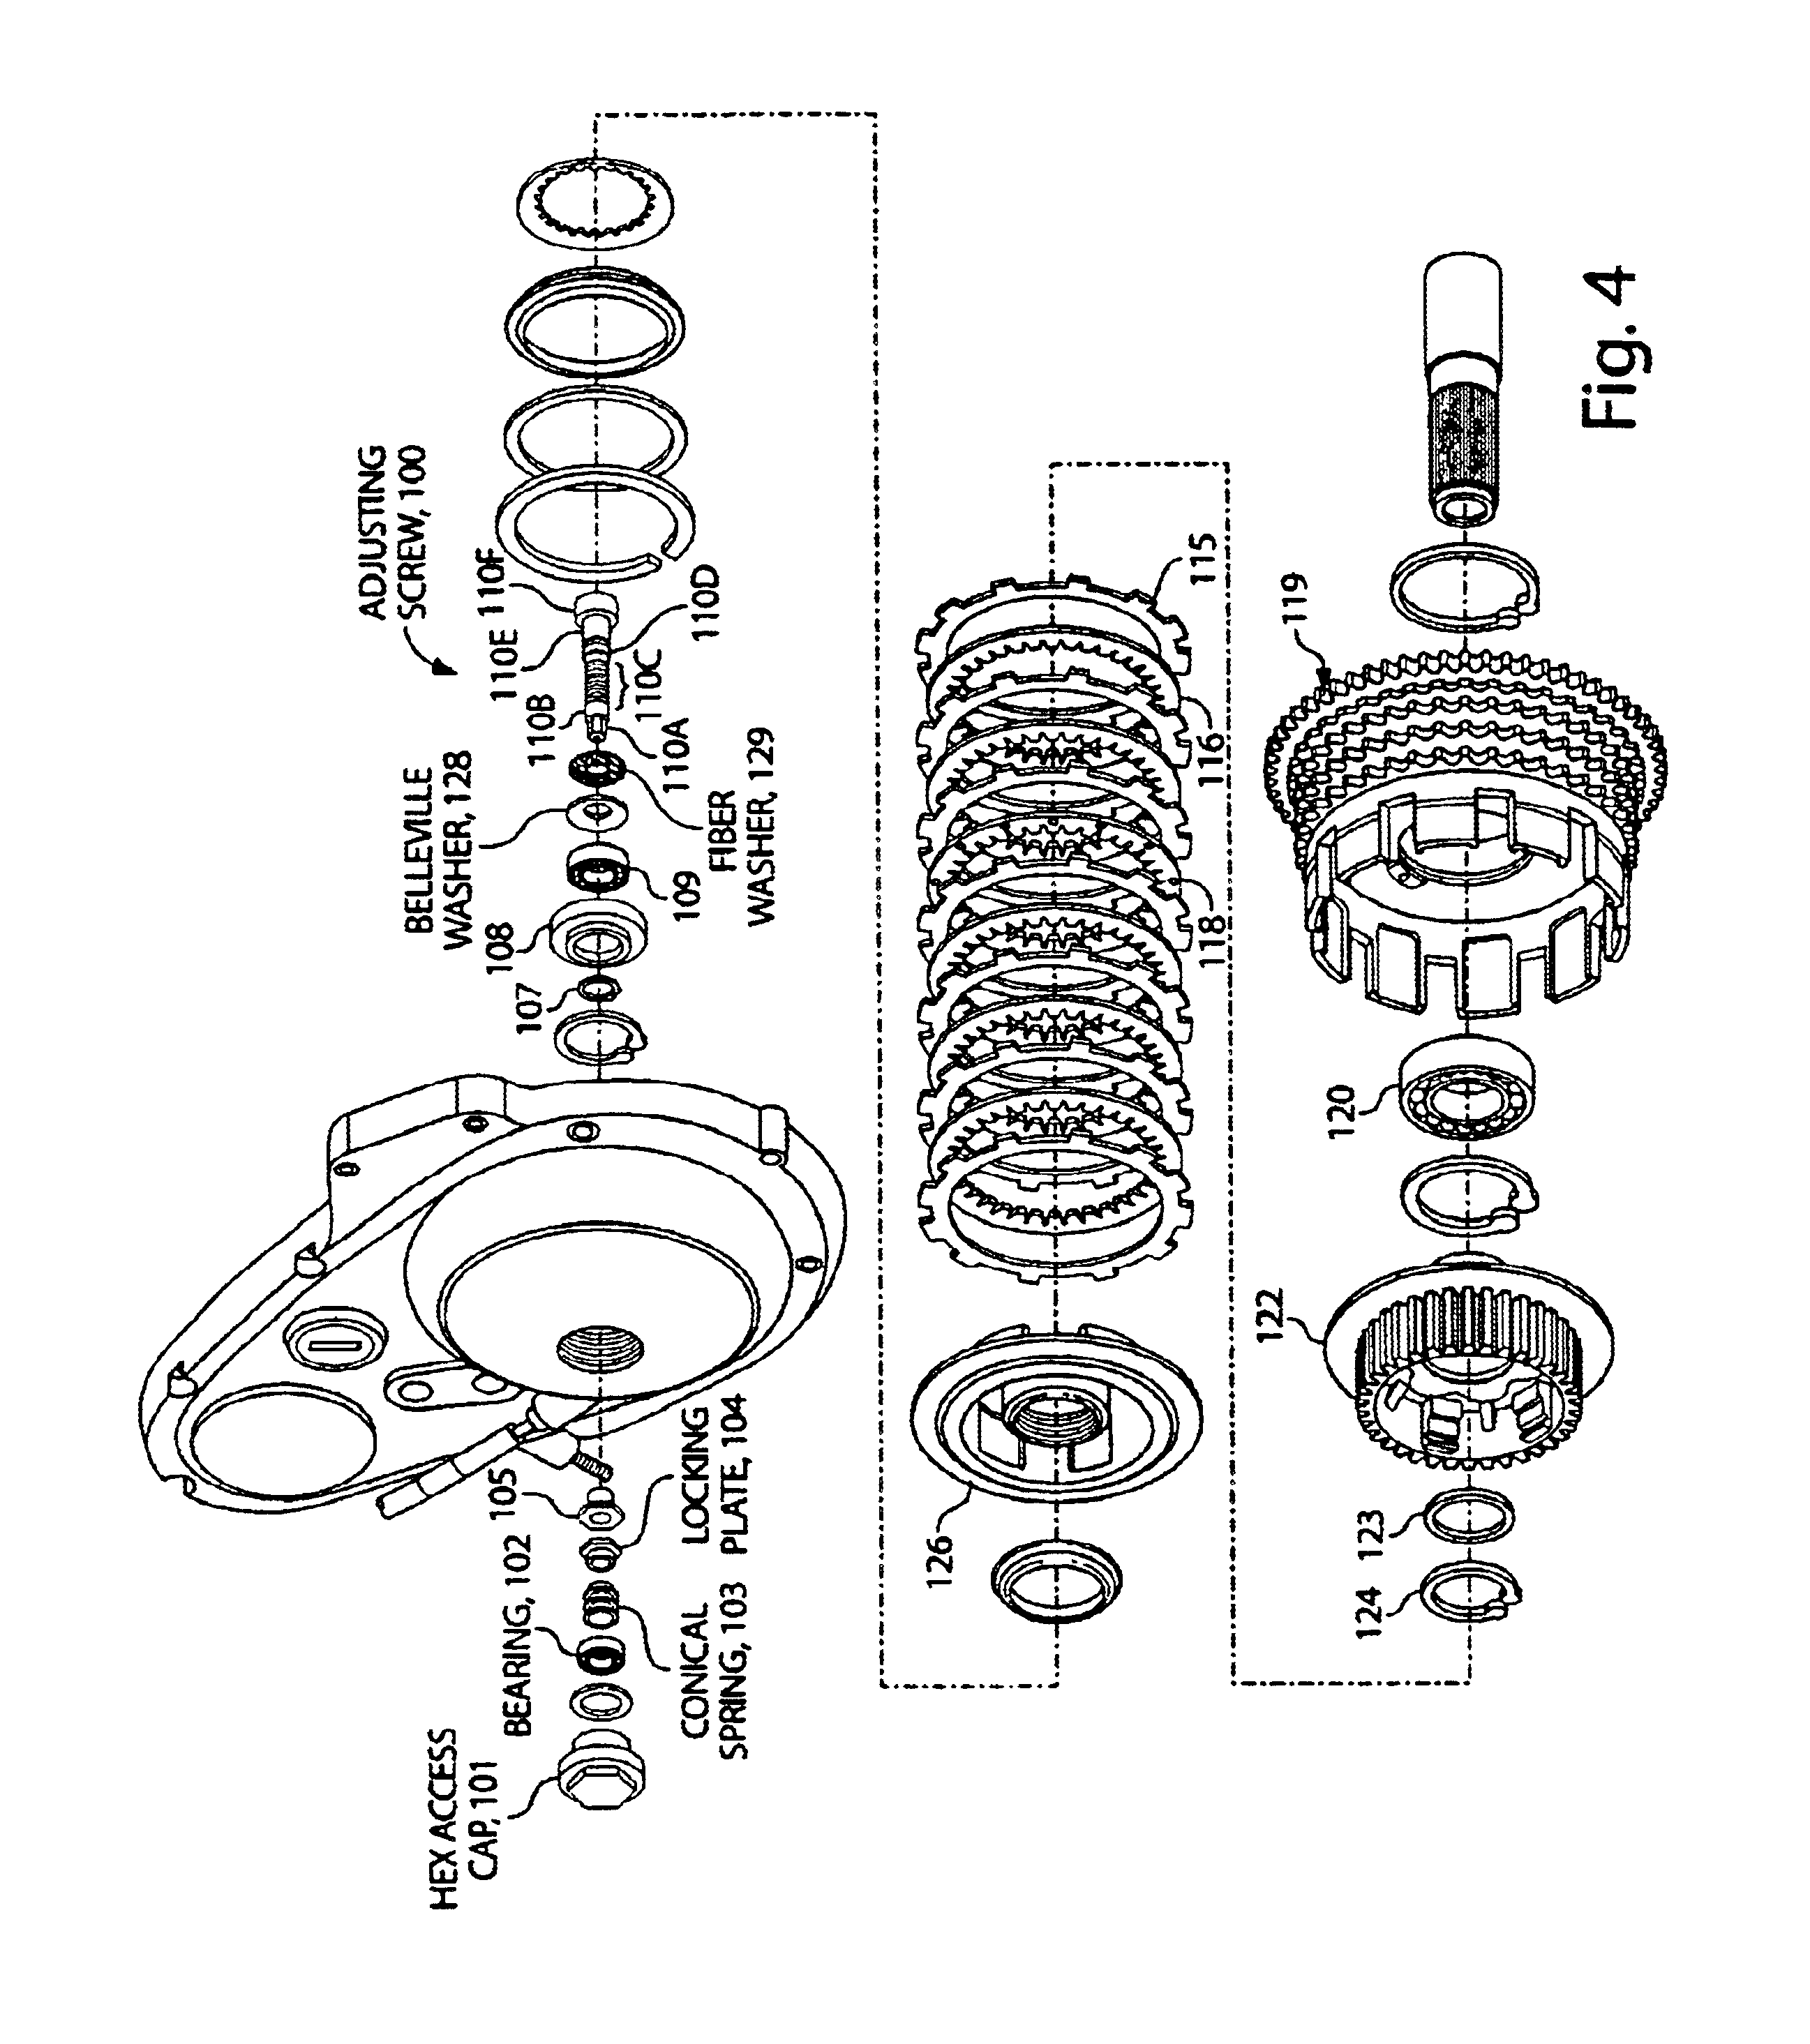 HP PartList further Wiring Diagram For Harley Davidson Radio together with Panhead Engine Wiring also 178032991499800889 also 2002 Sportster Wiring Diagram. on 1992 harley sportster wiring diagrams